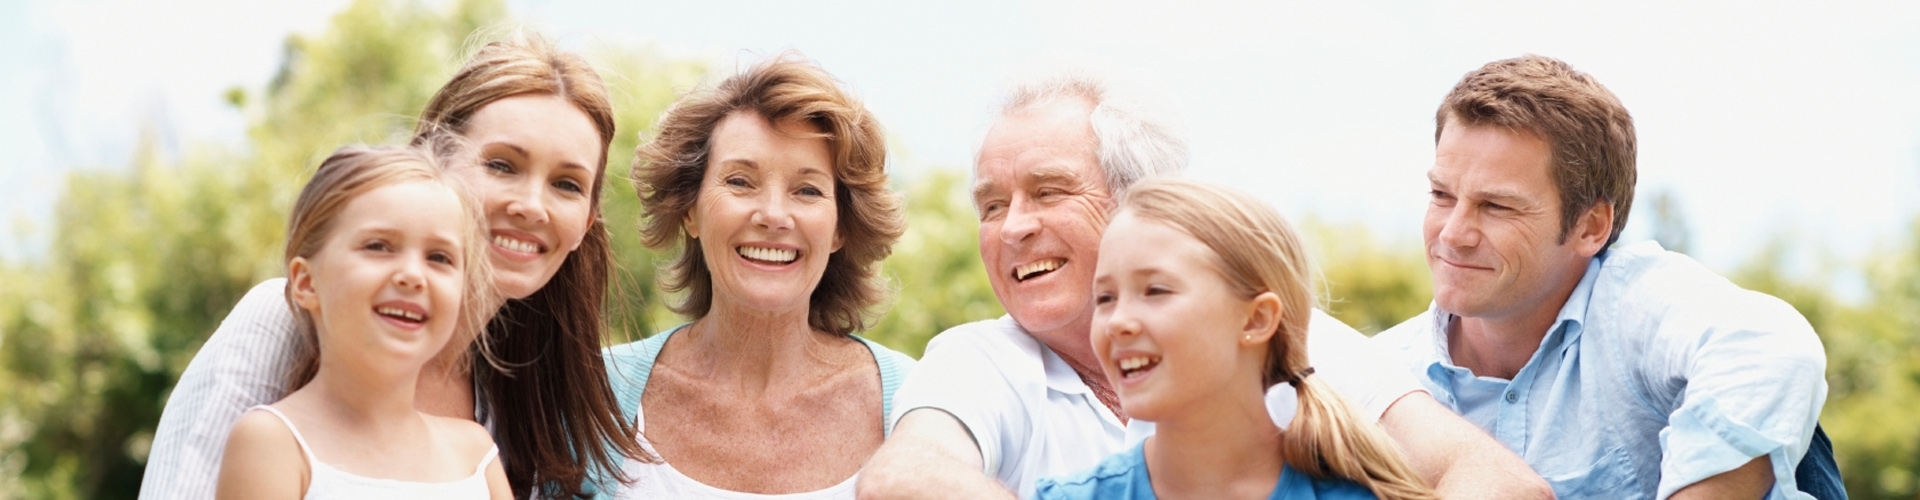 people_smiling_family